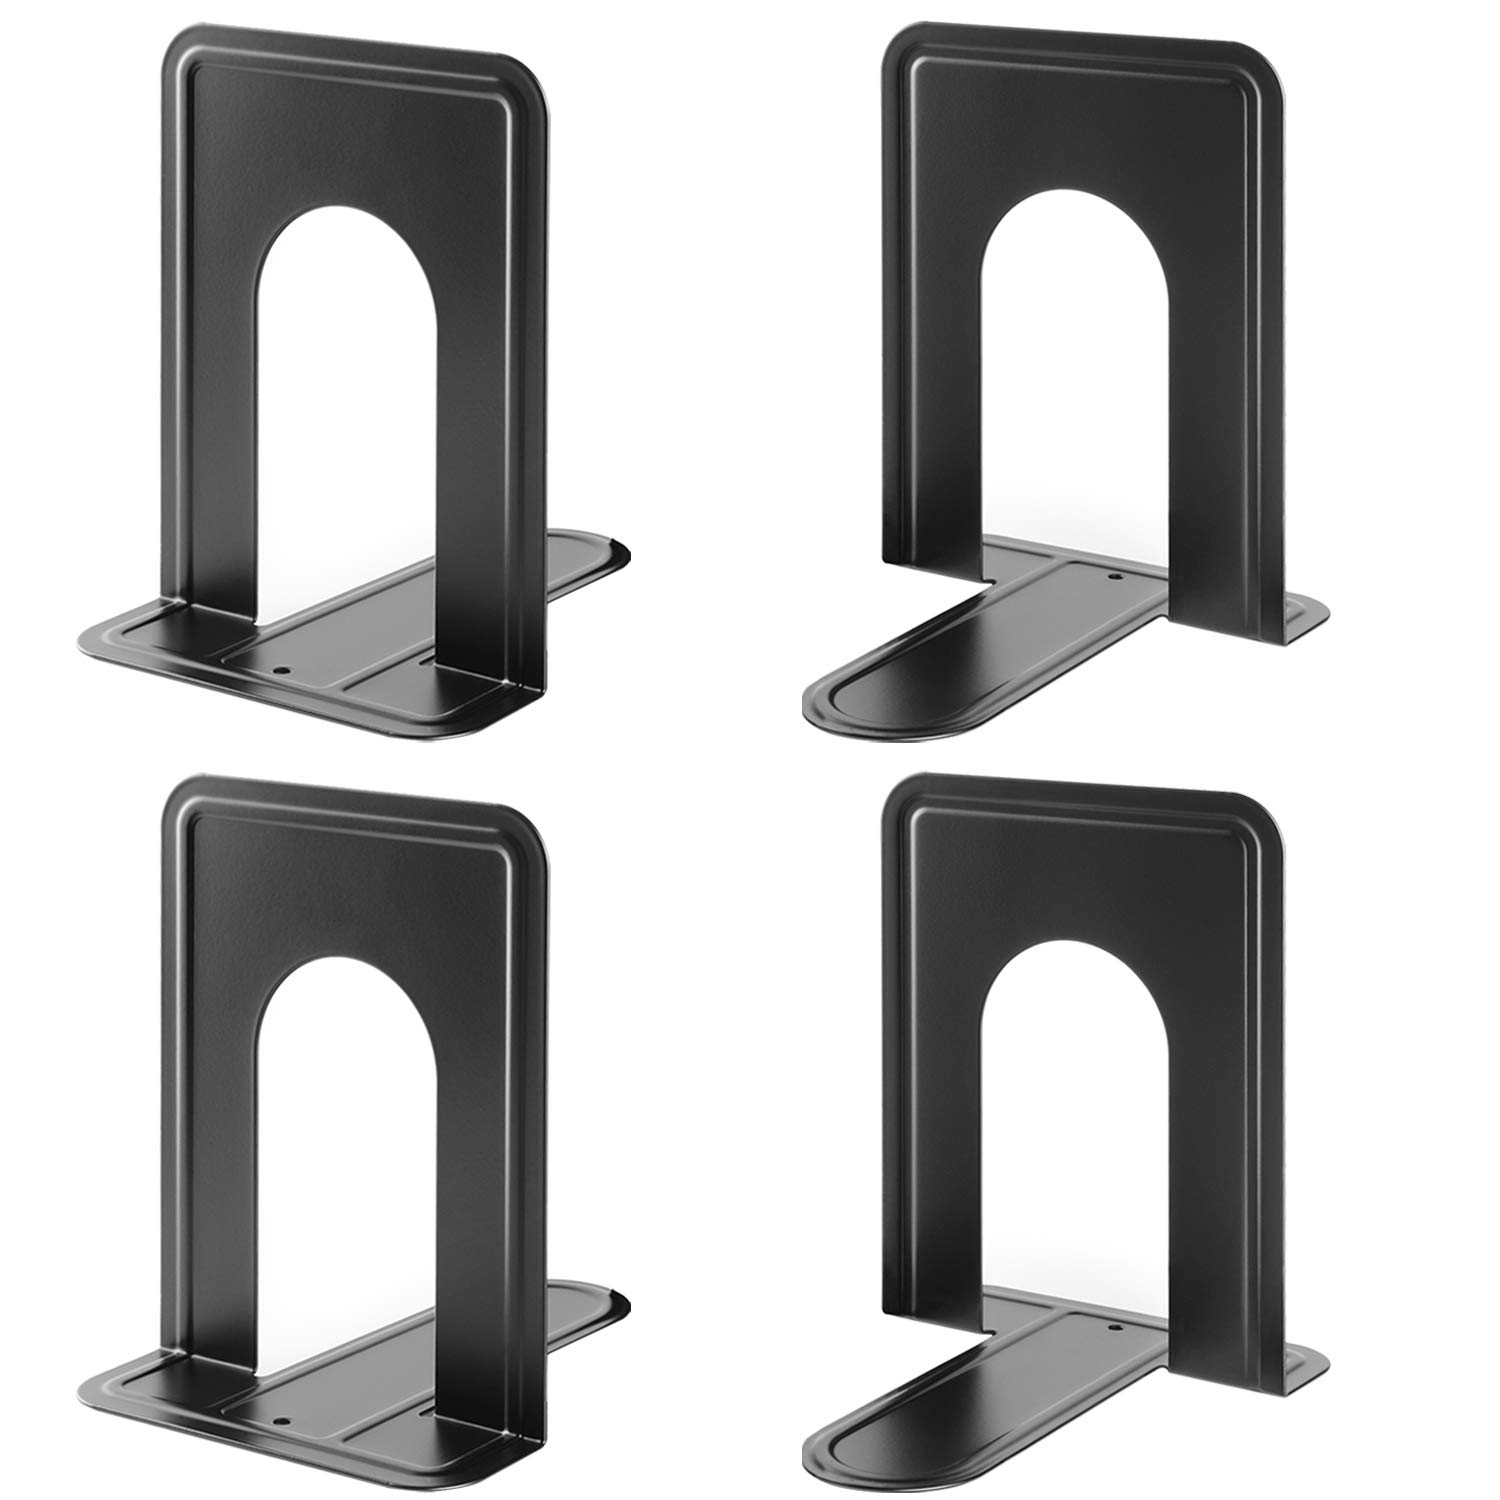 MaxGear Book Ends Universal Premium Bookends Non-Skid Heavy Duty Metal Books End, Bookend Pack, Book Stopper for Books/Movies/CDs/Video Games, 6 x 4.6 x 6 inches, Black (2 Pairs/4 Pieces, Large) by MaxGear